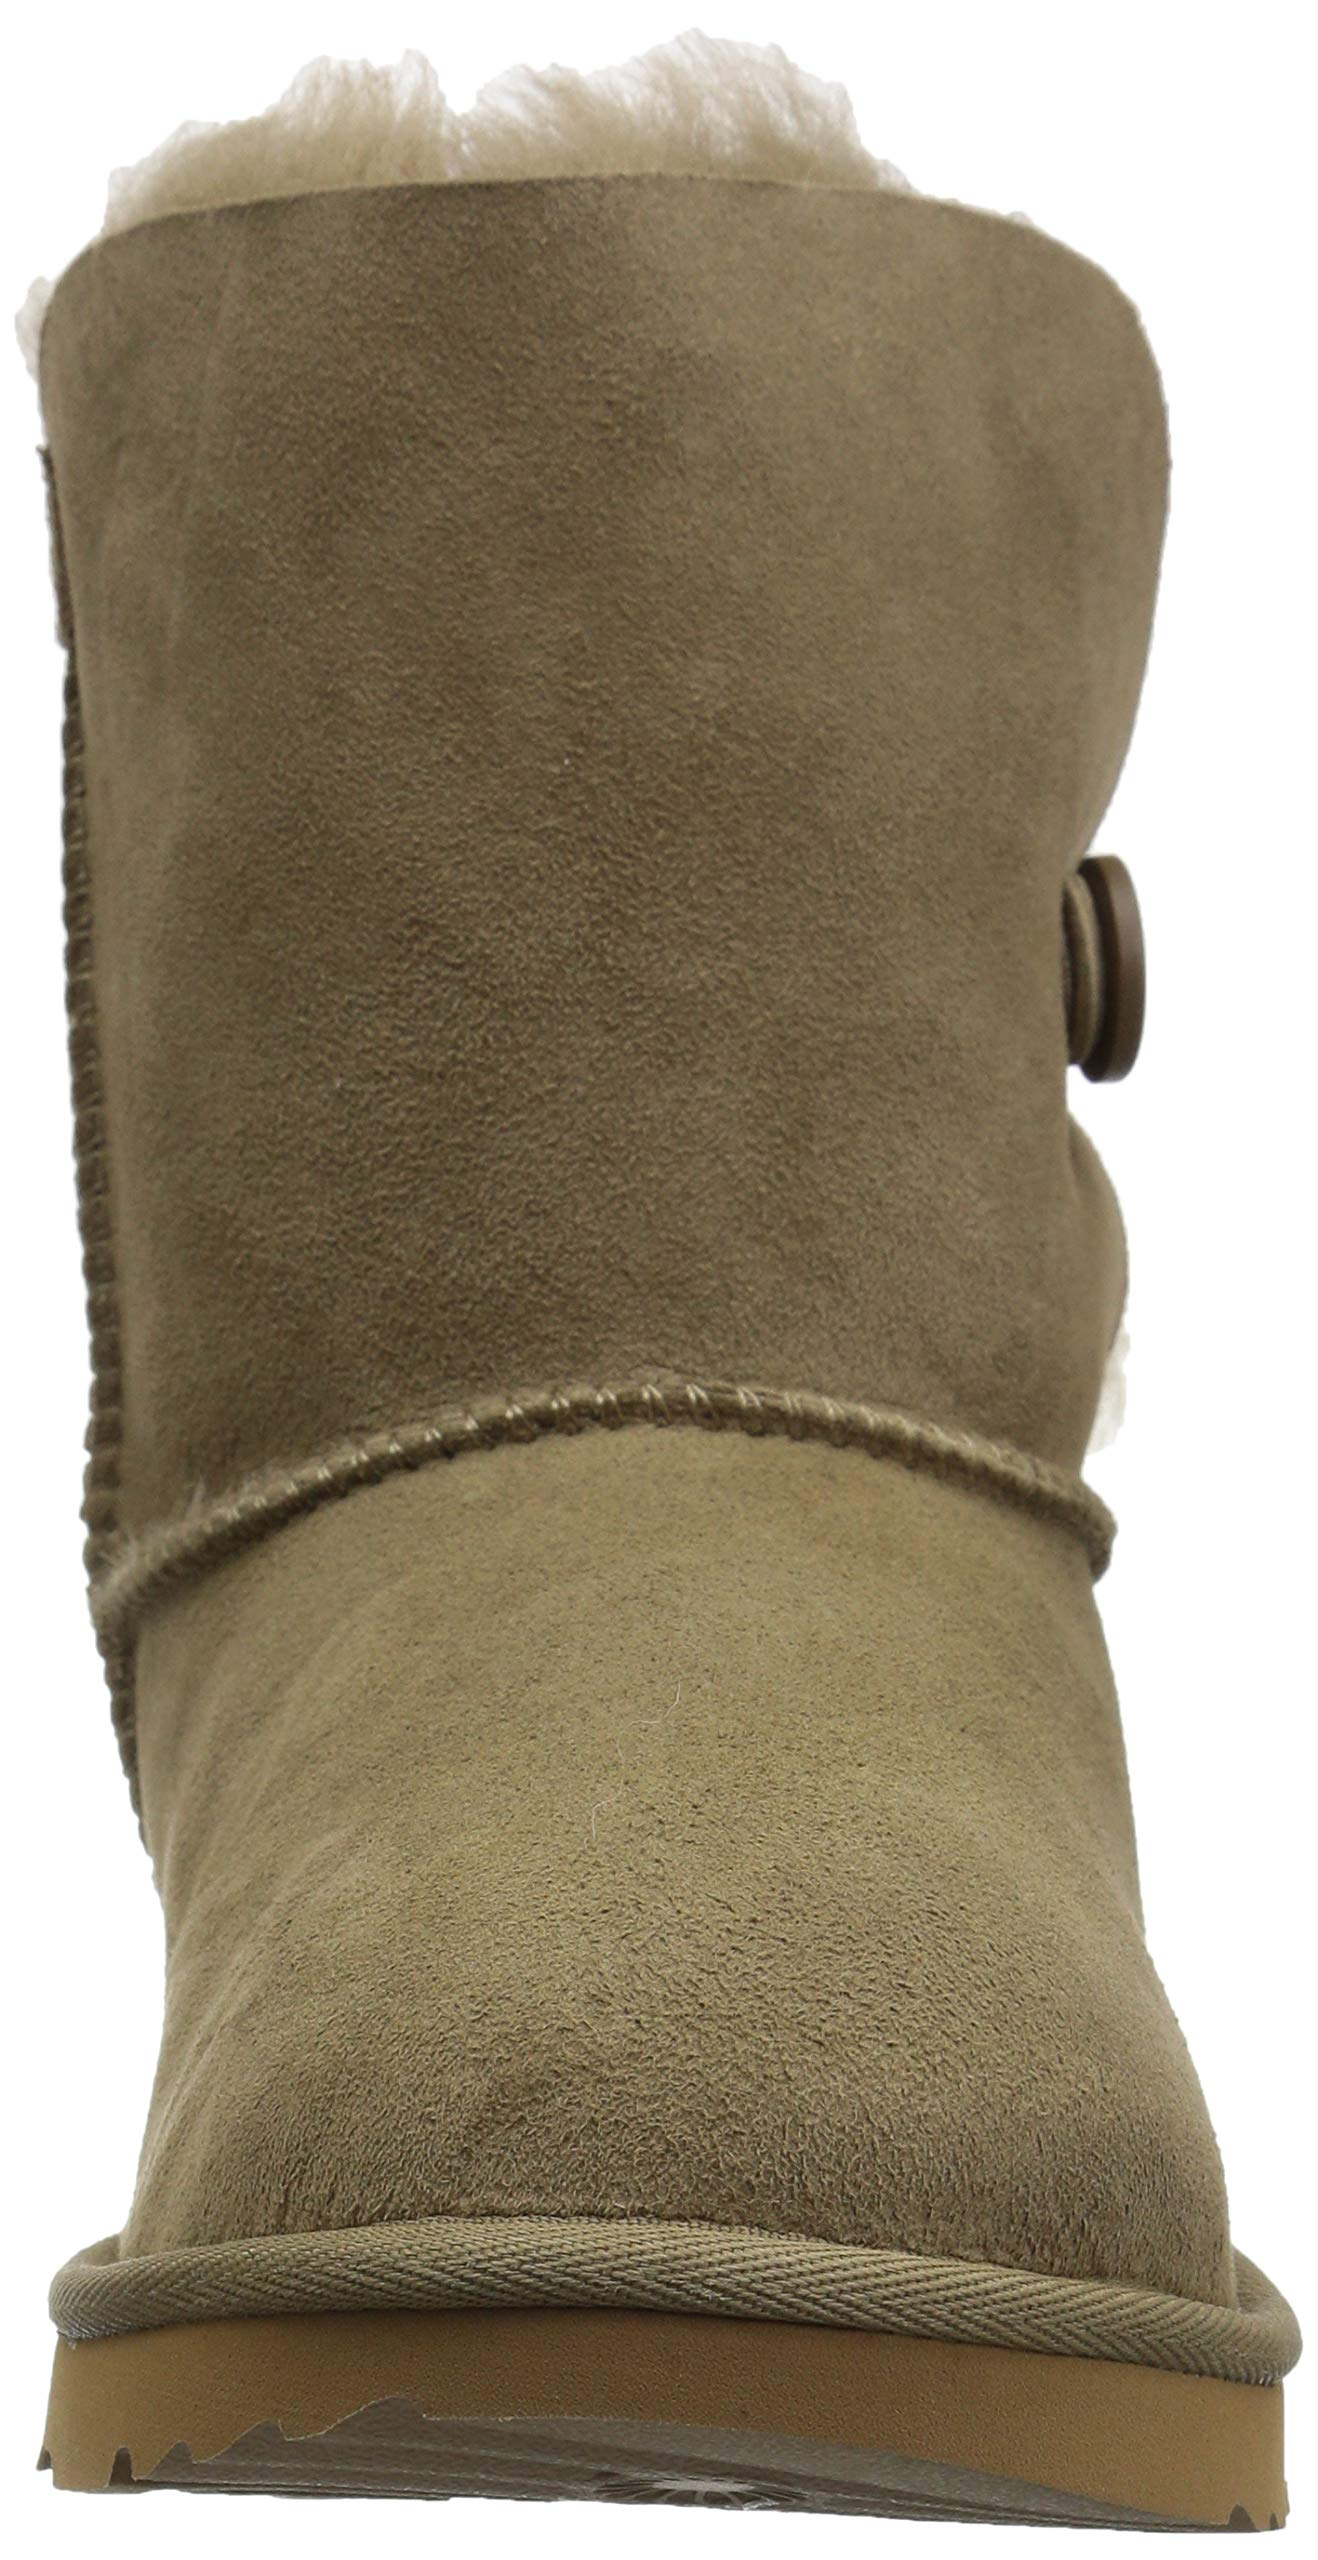 UGG Unisex K Bailey Button II Fashion Boot, Antilope, 13 M US Little Kid by UGG (Image #4)